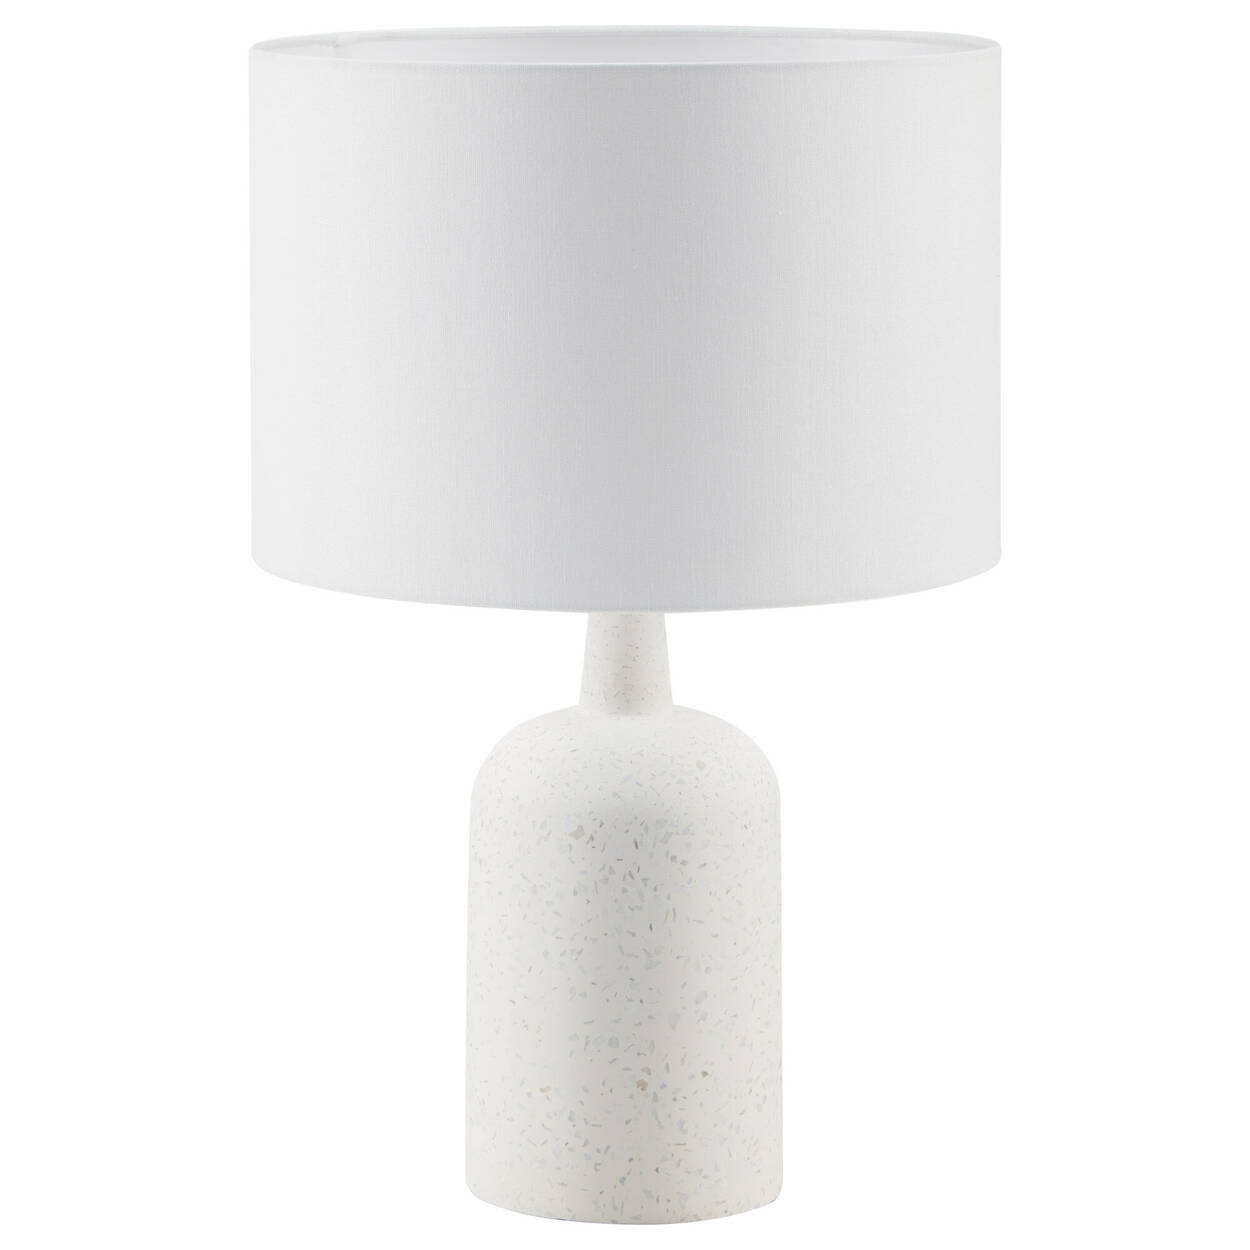 Speckled Ceramic Table Lamp